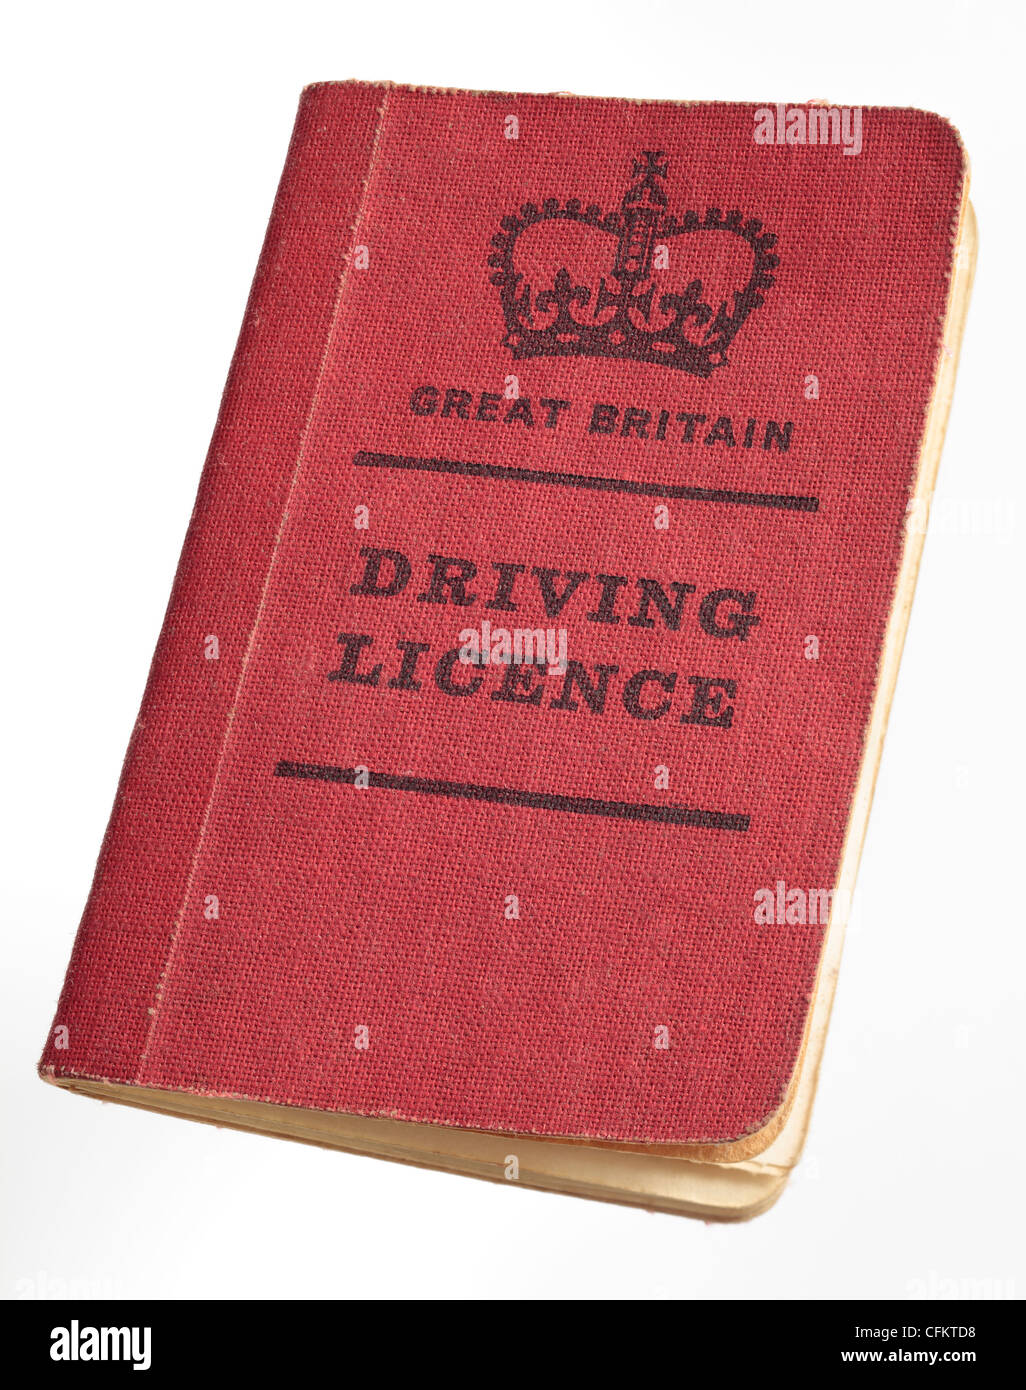 Old Style Red Cover British Driving Licence from the late 60's - Stock Image